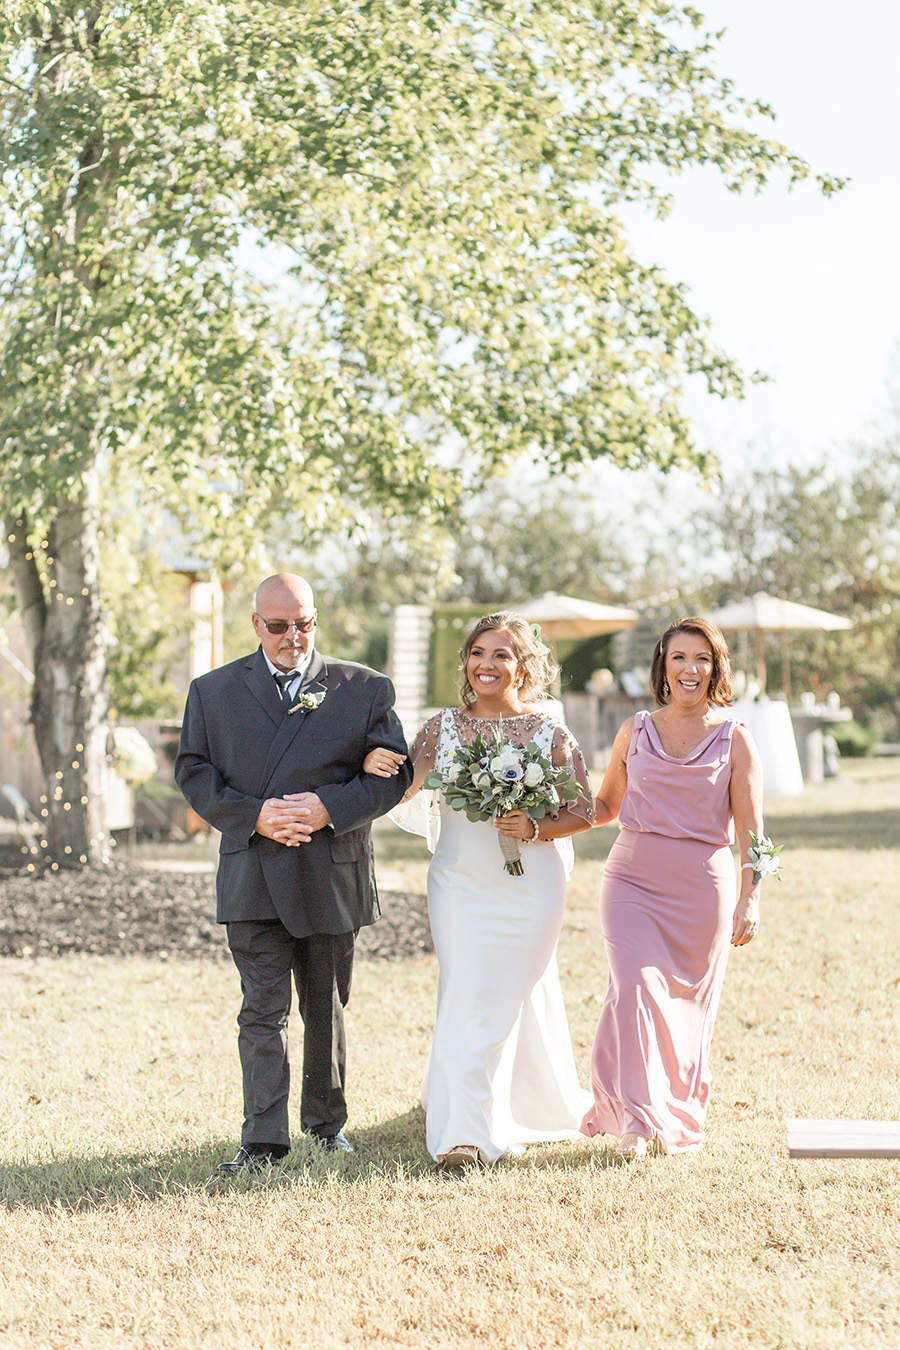 Brides walks down the aisle with her parents